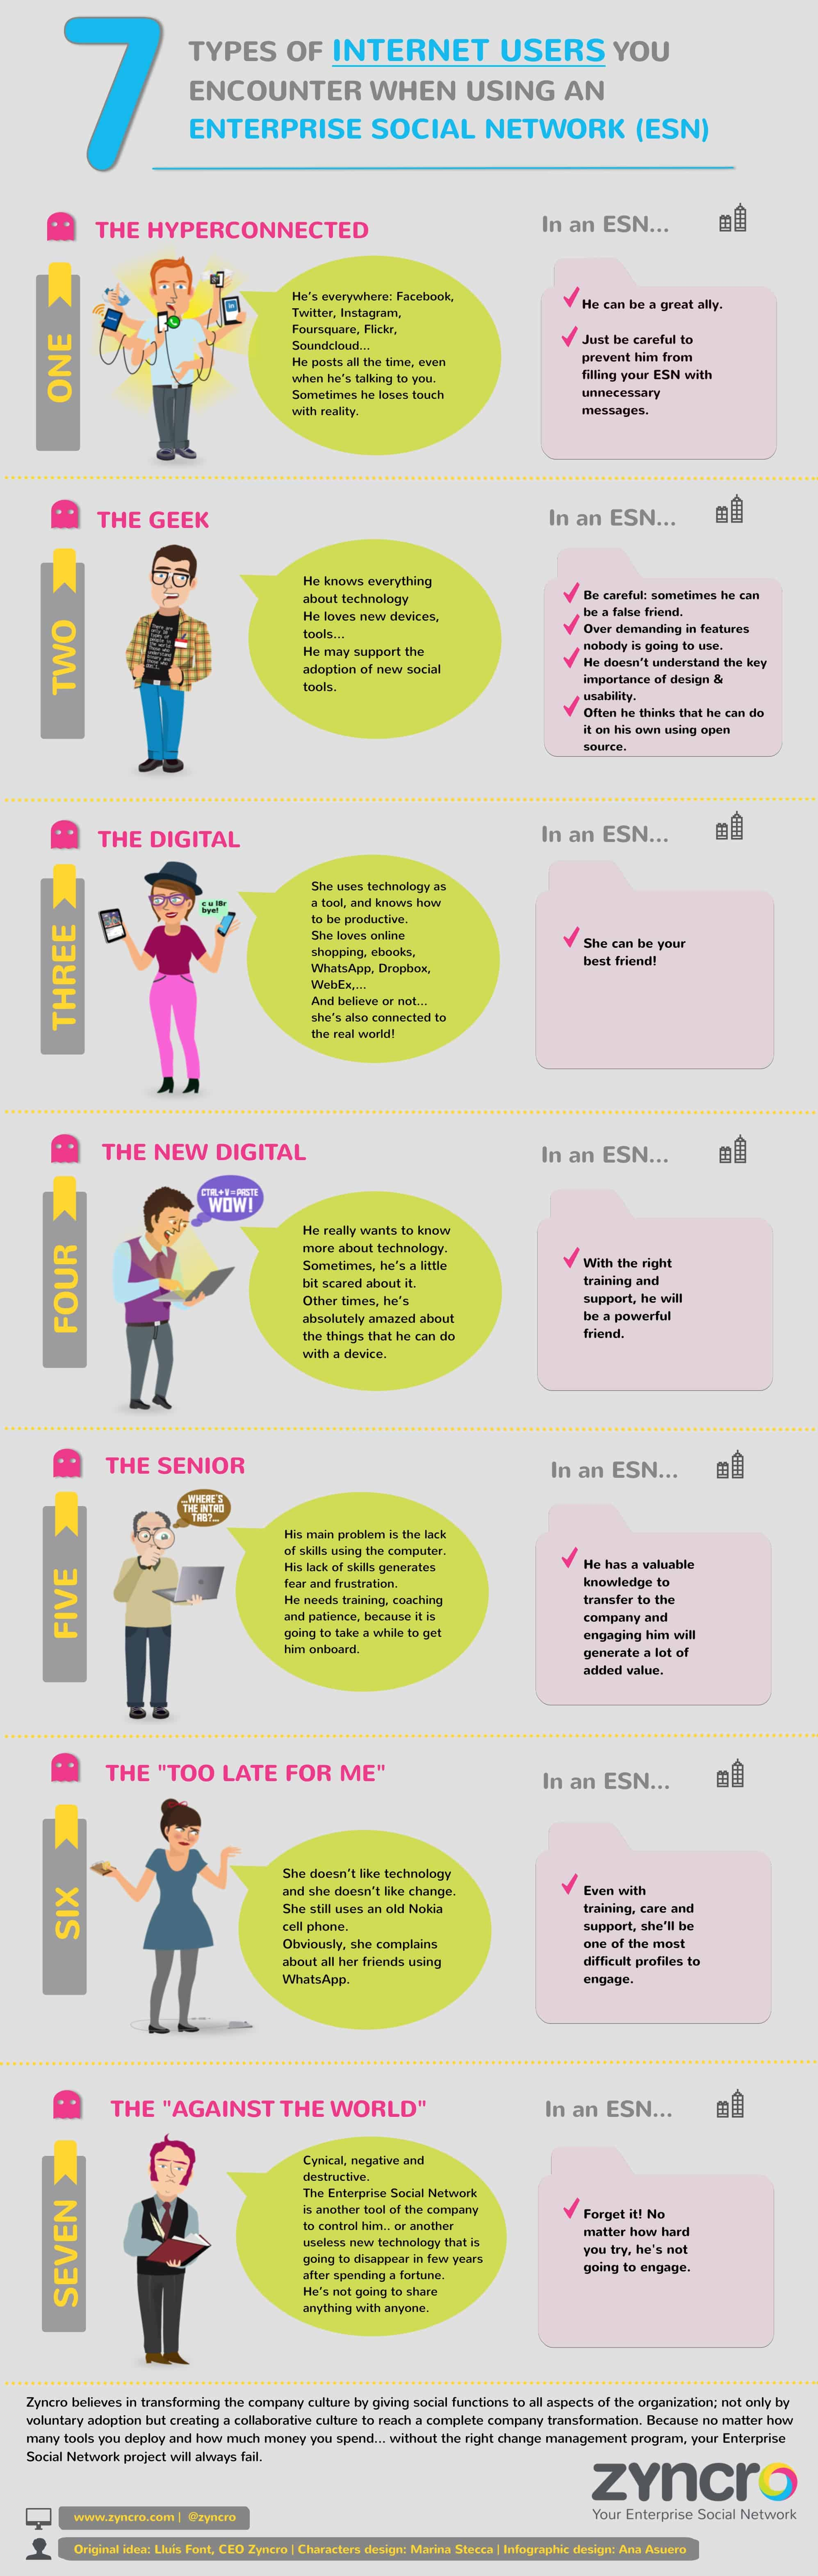 infographic-7-types-of-internet-user-you-encounter-when-using-an-esn-1